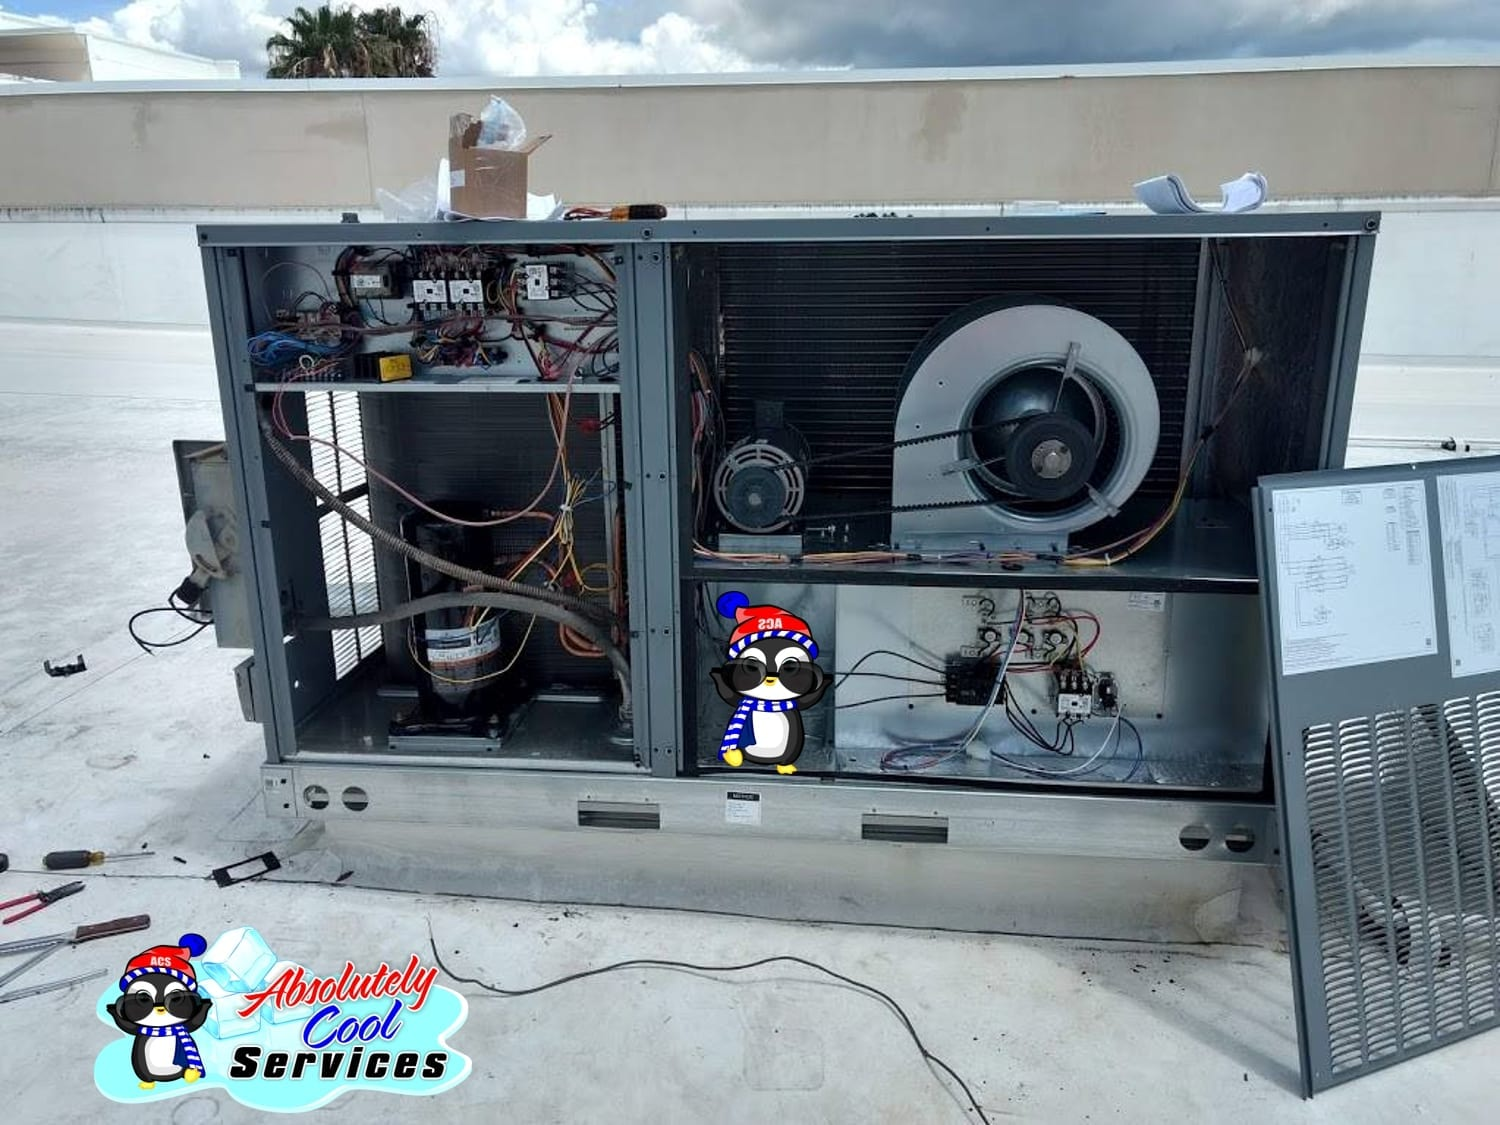 Roof Air Conditioning | Air Conditioning Diagnosis Service near Delray Beach